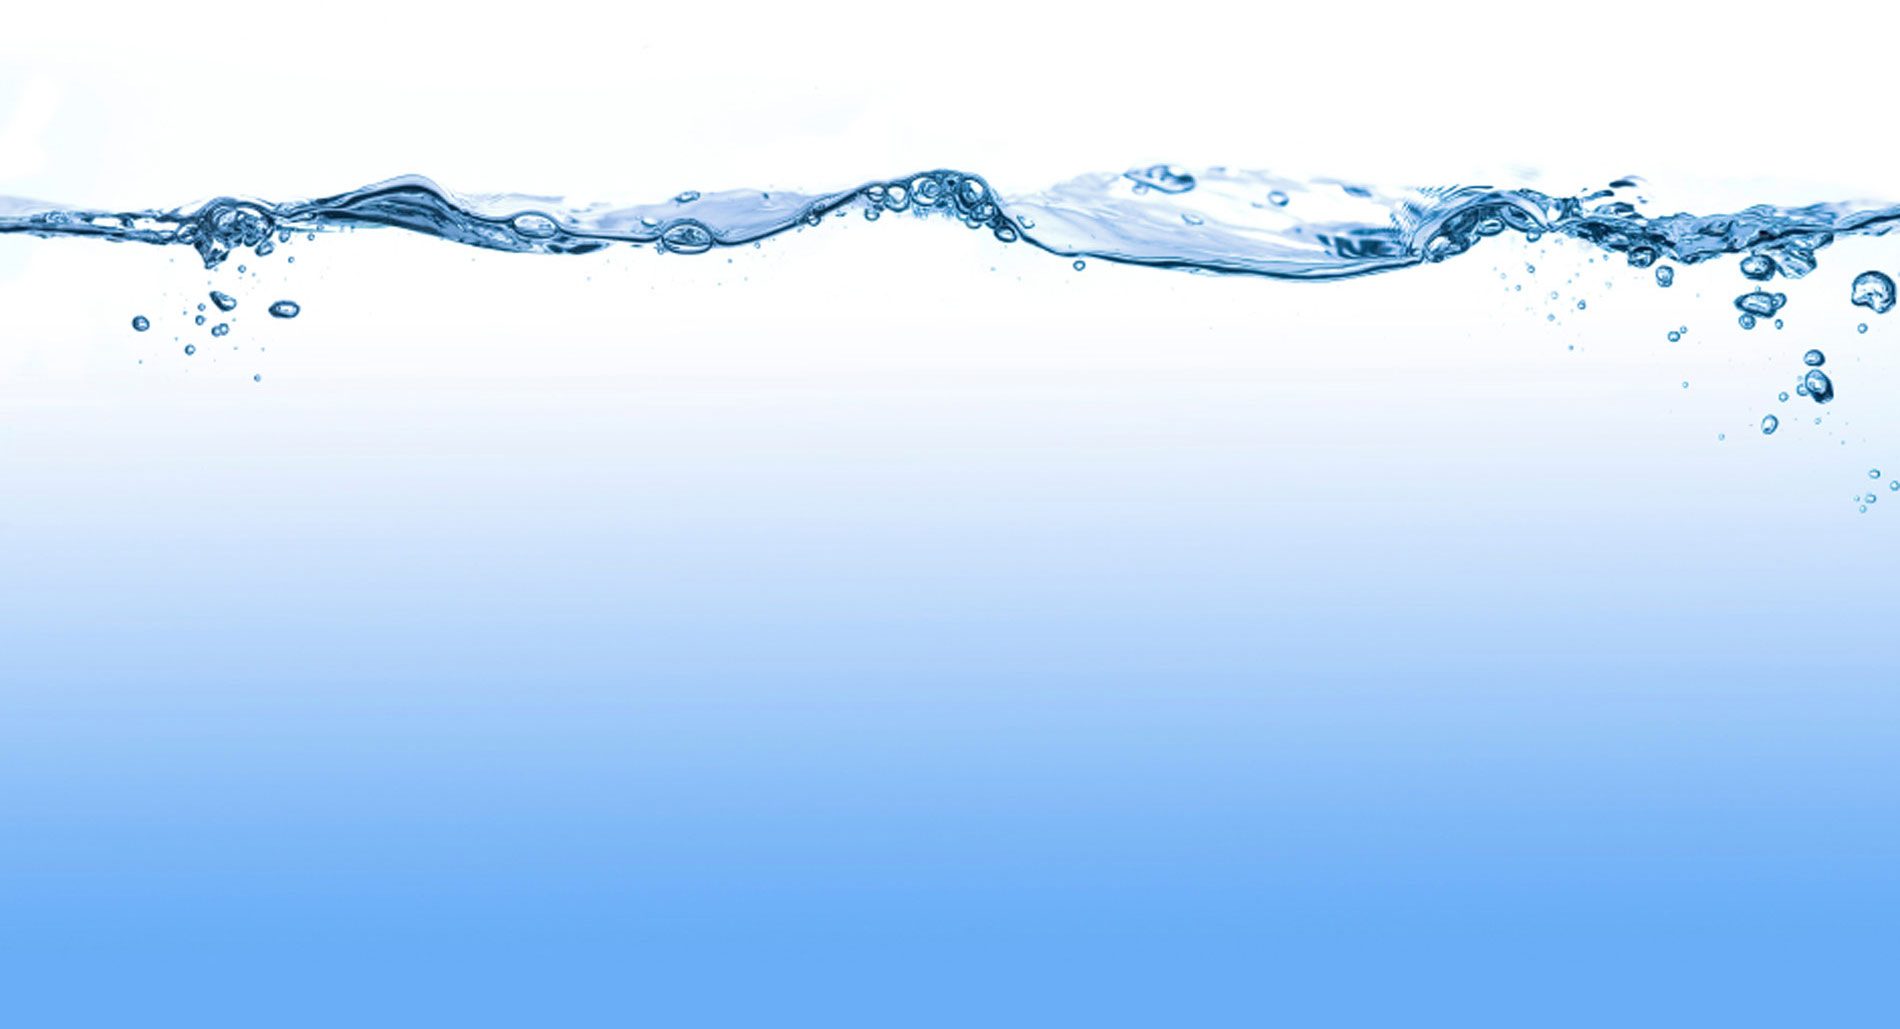 Water Background Images - WallpaperSafari